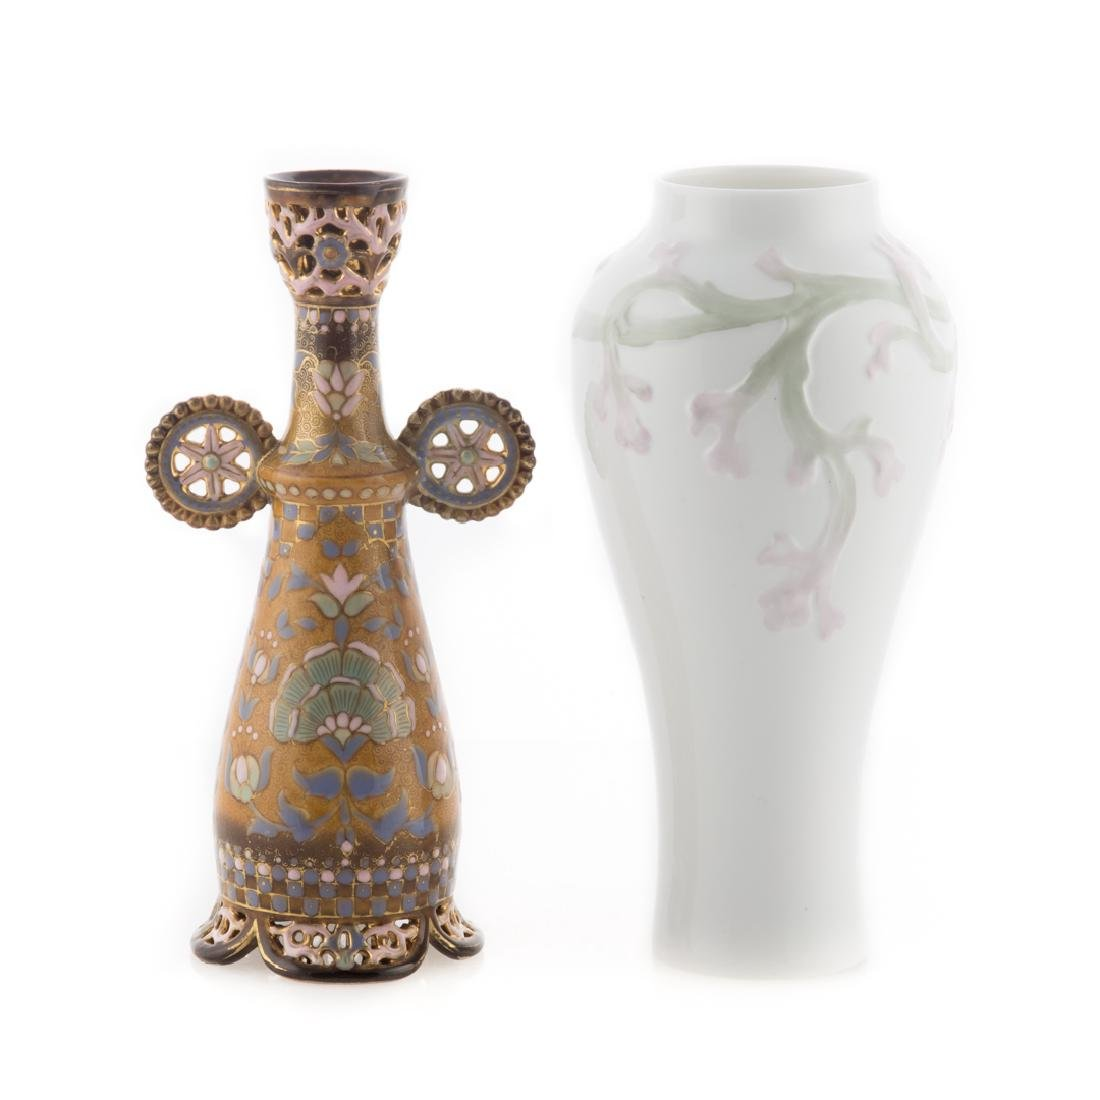 Zsolnay vase and Rorstrand porcelain vase